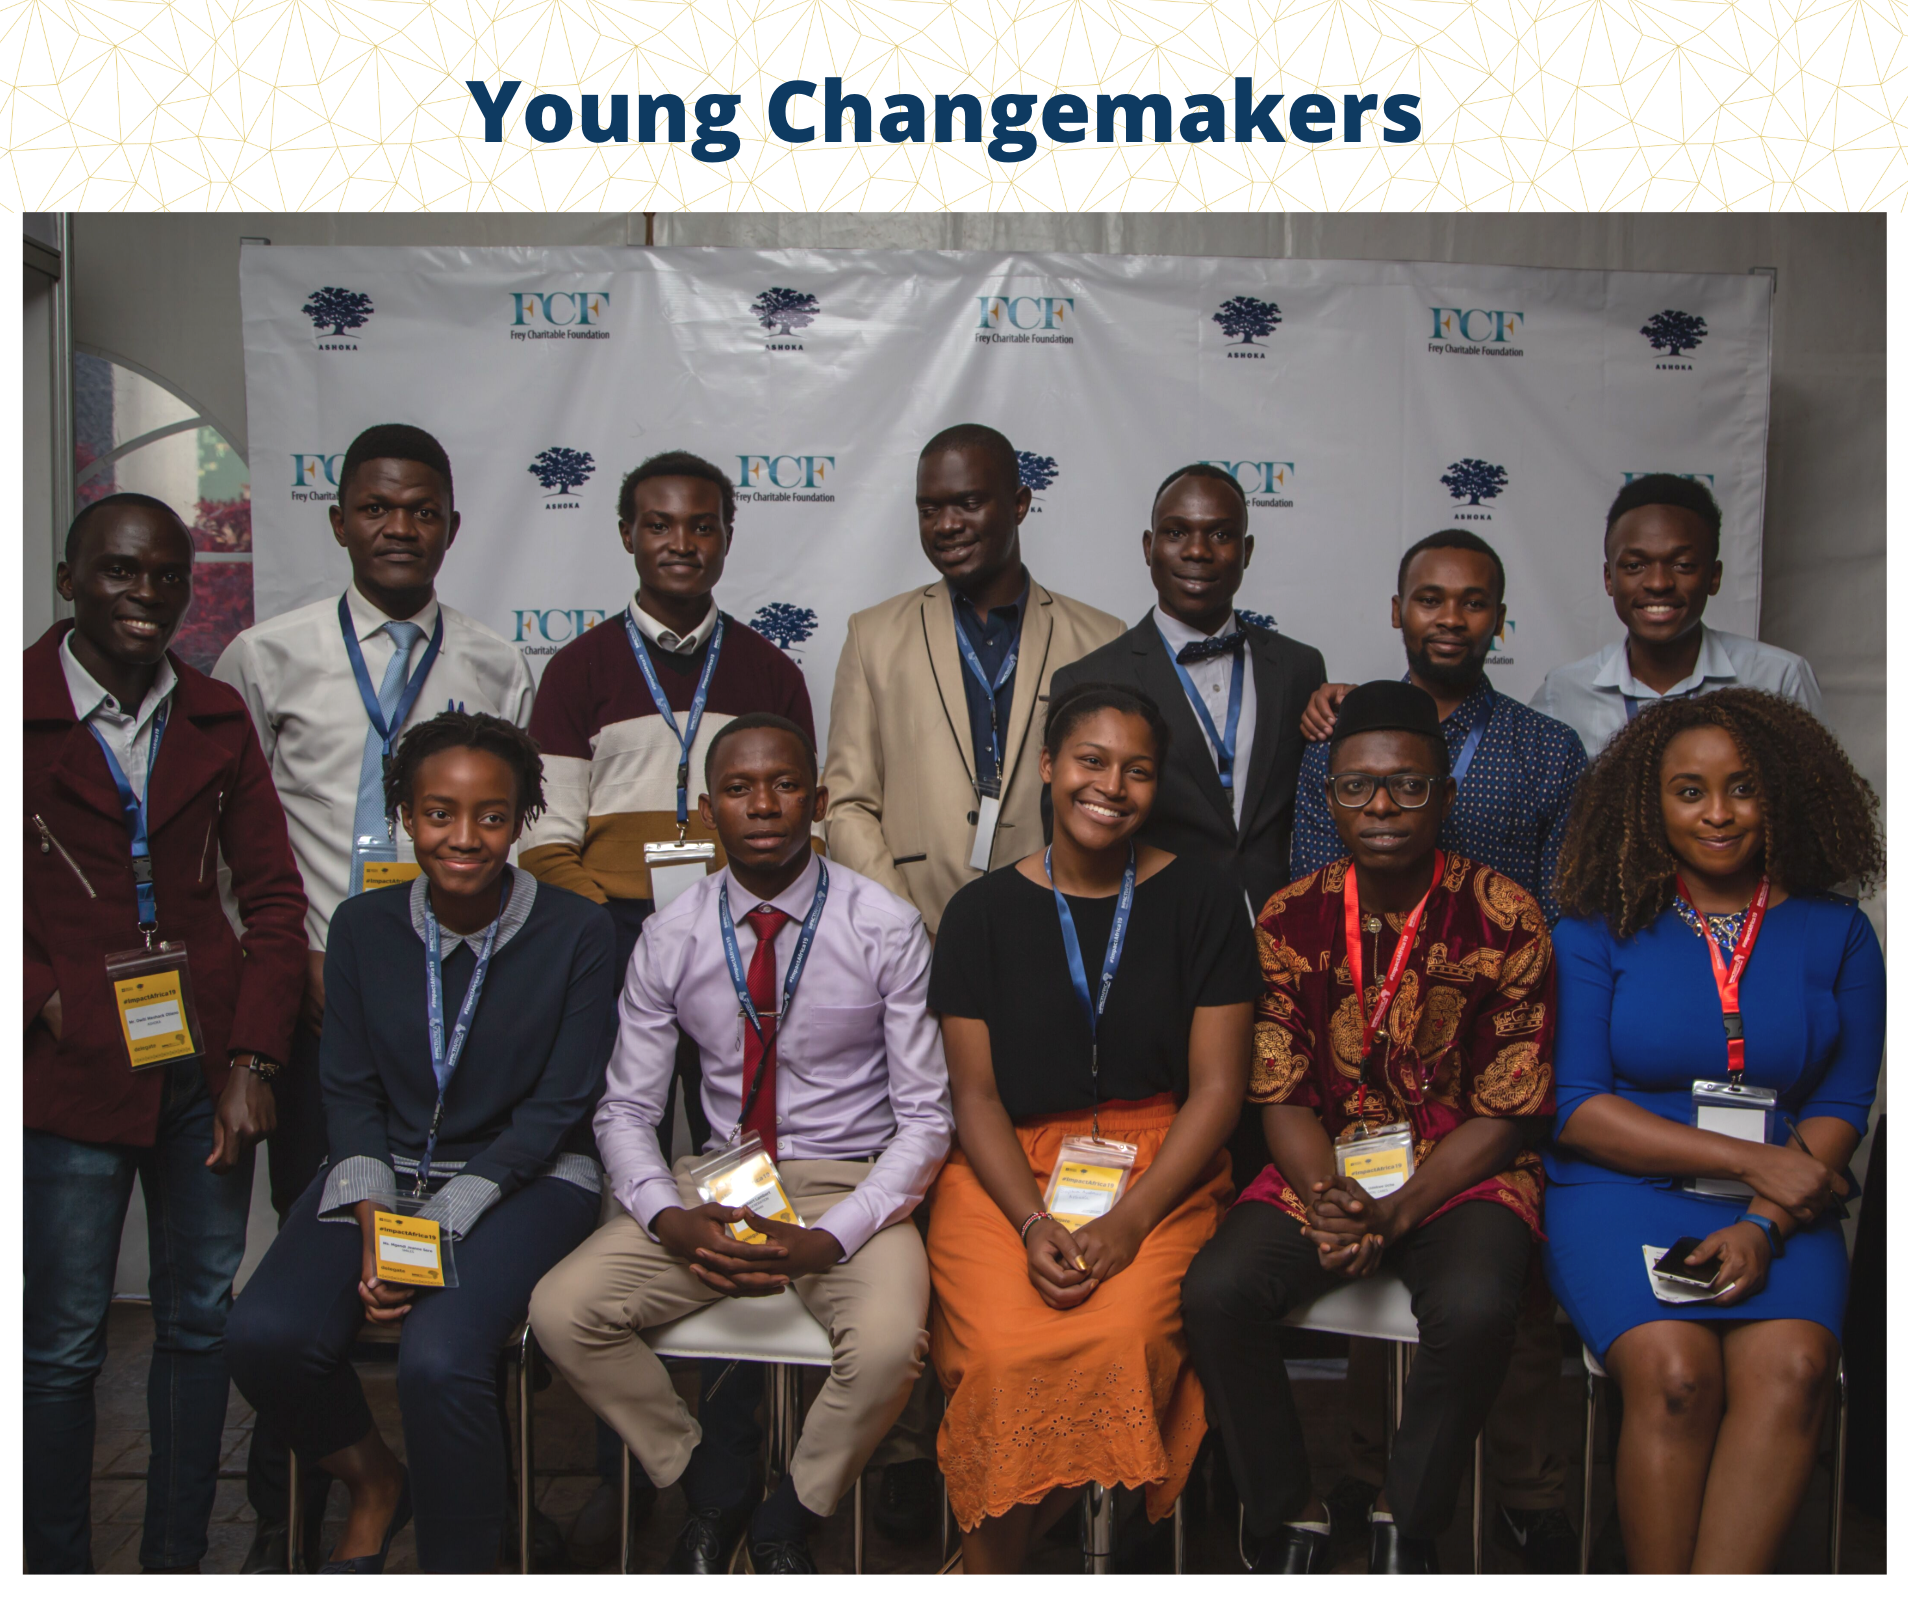 Young social entrepreneurs at the impact Africa summit